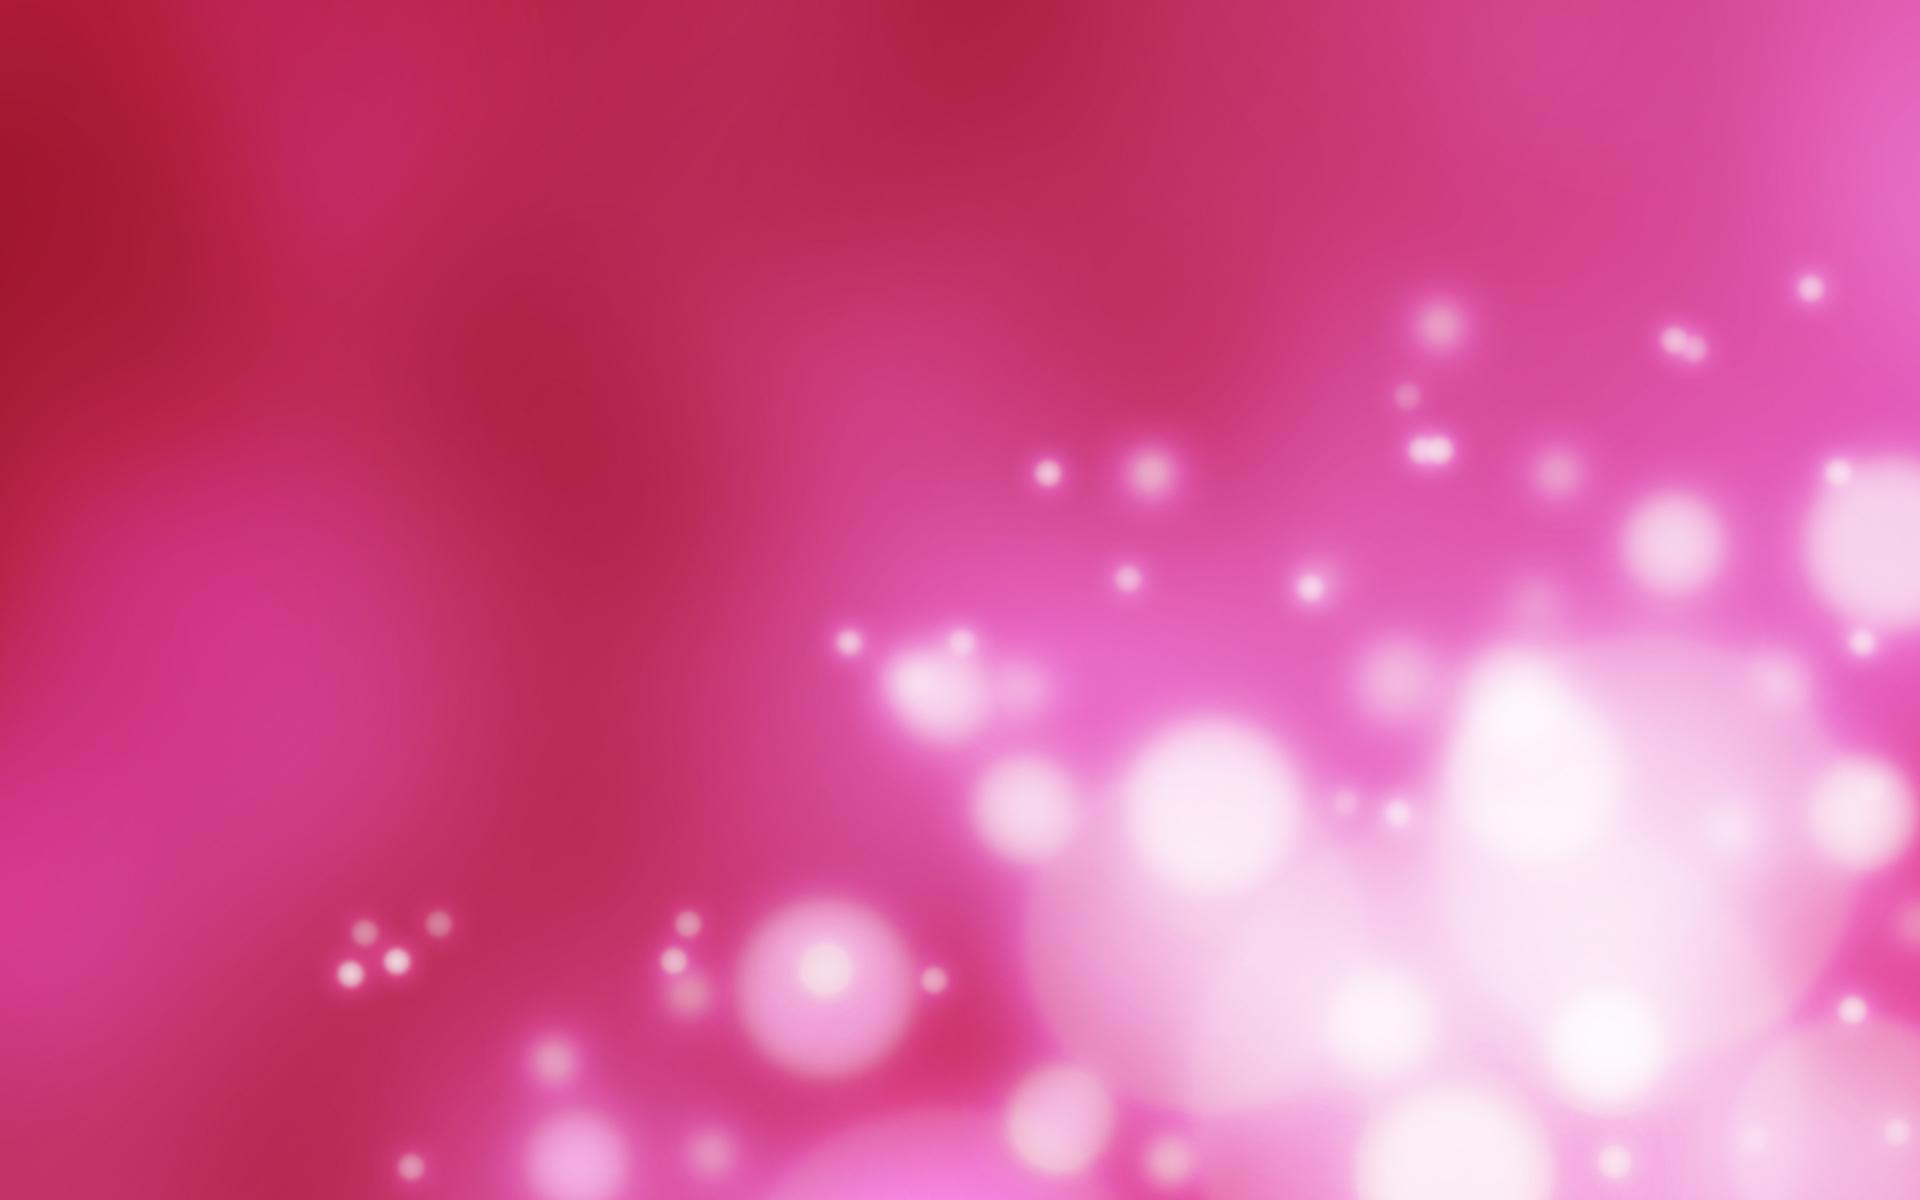 Pink Background Wallpaper 34230 1920x1200